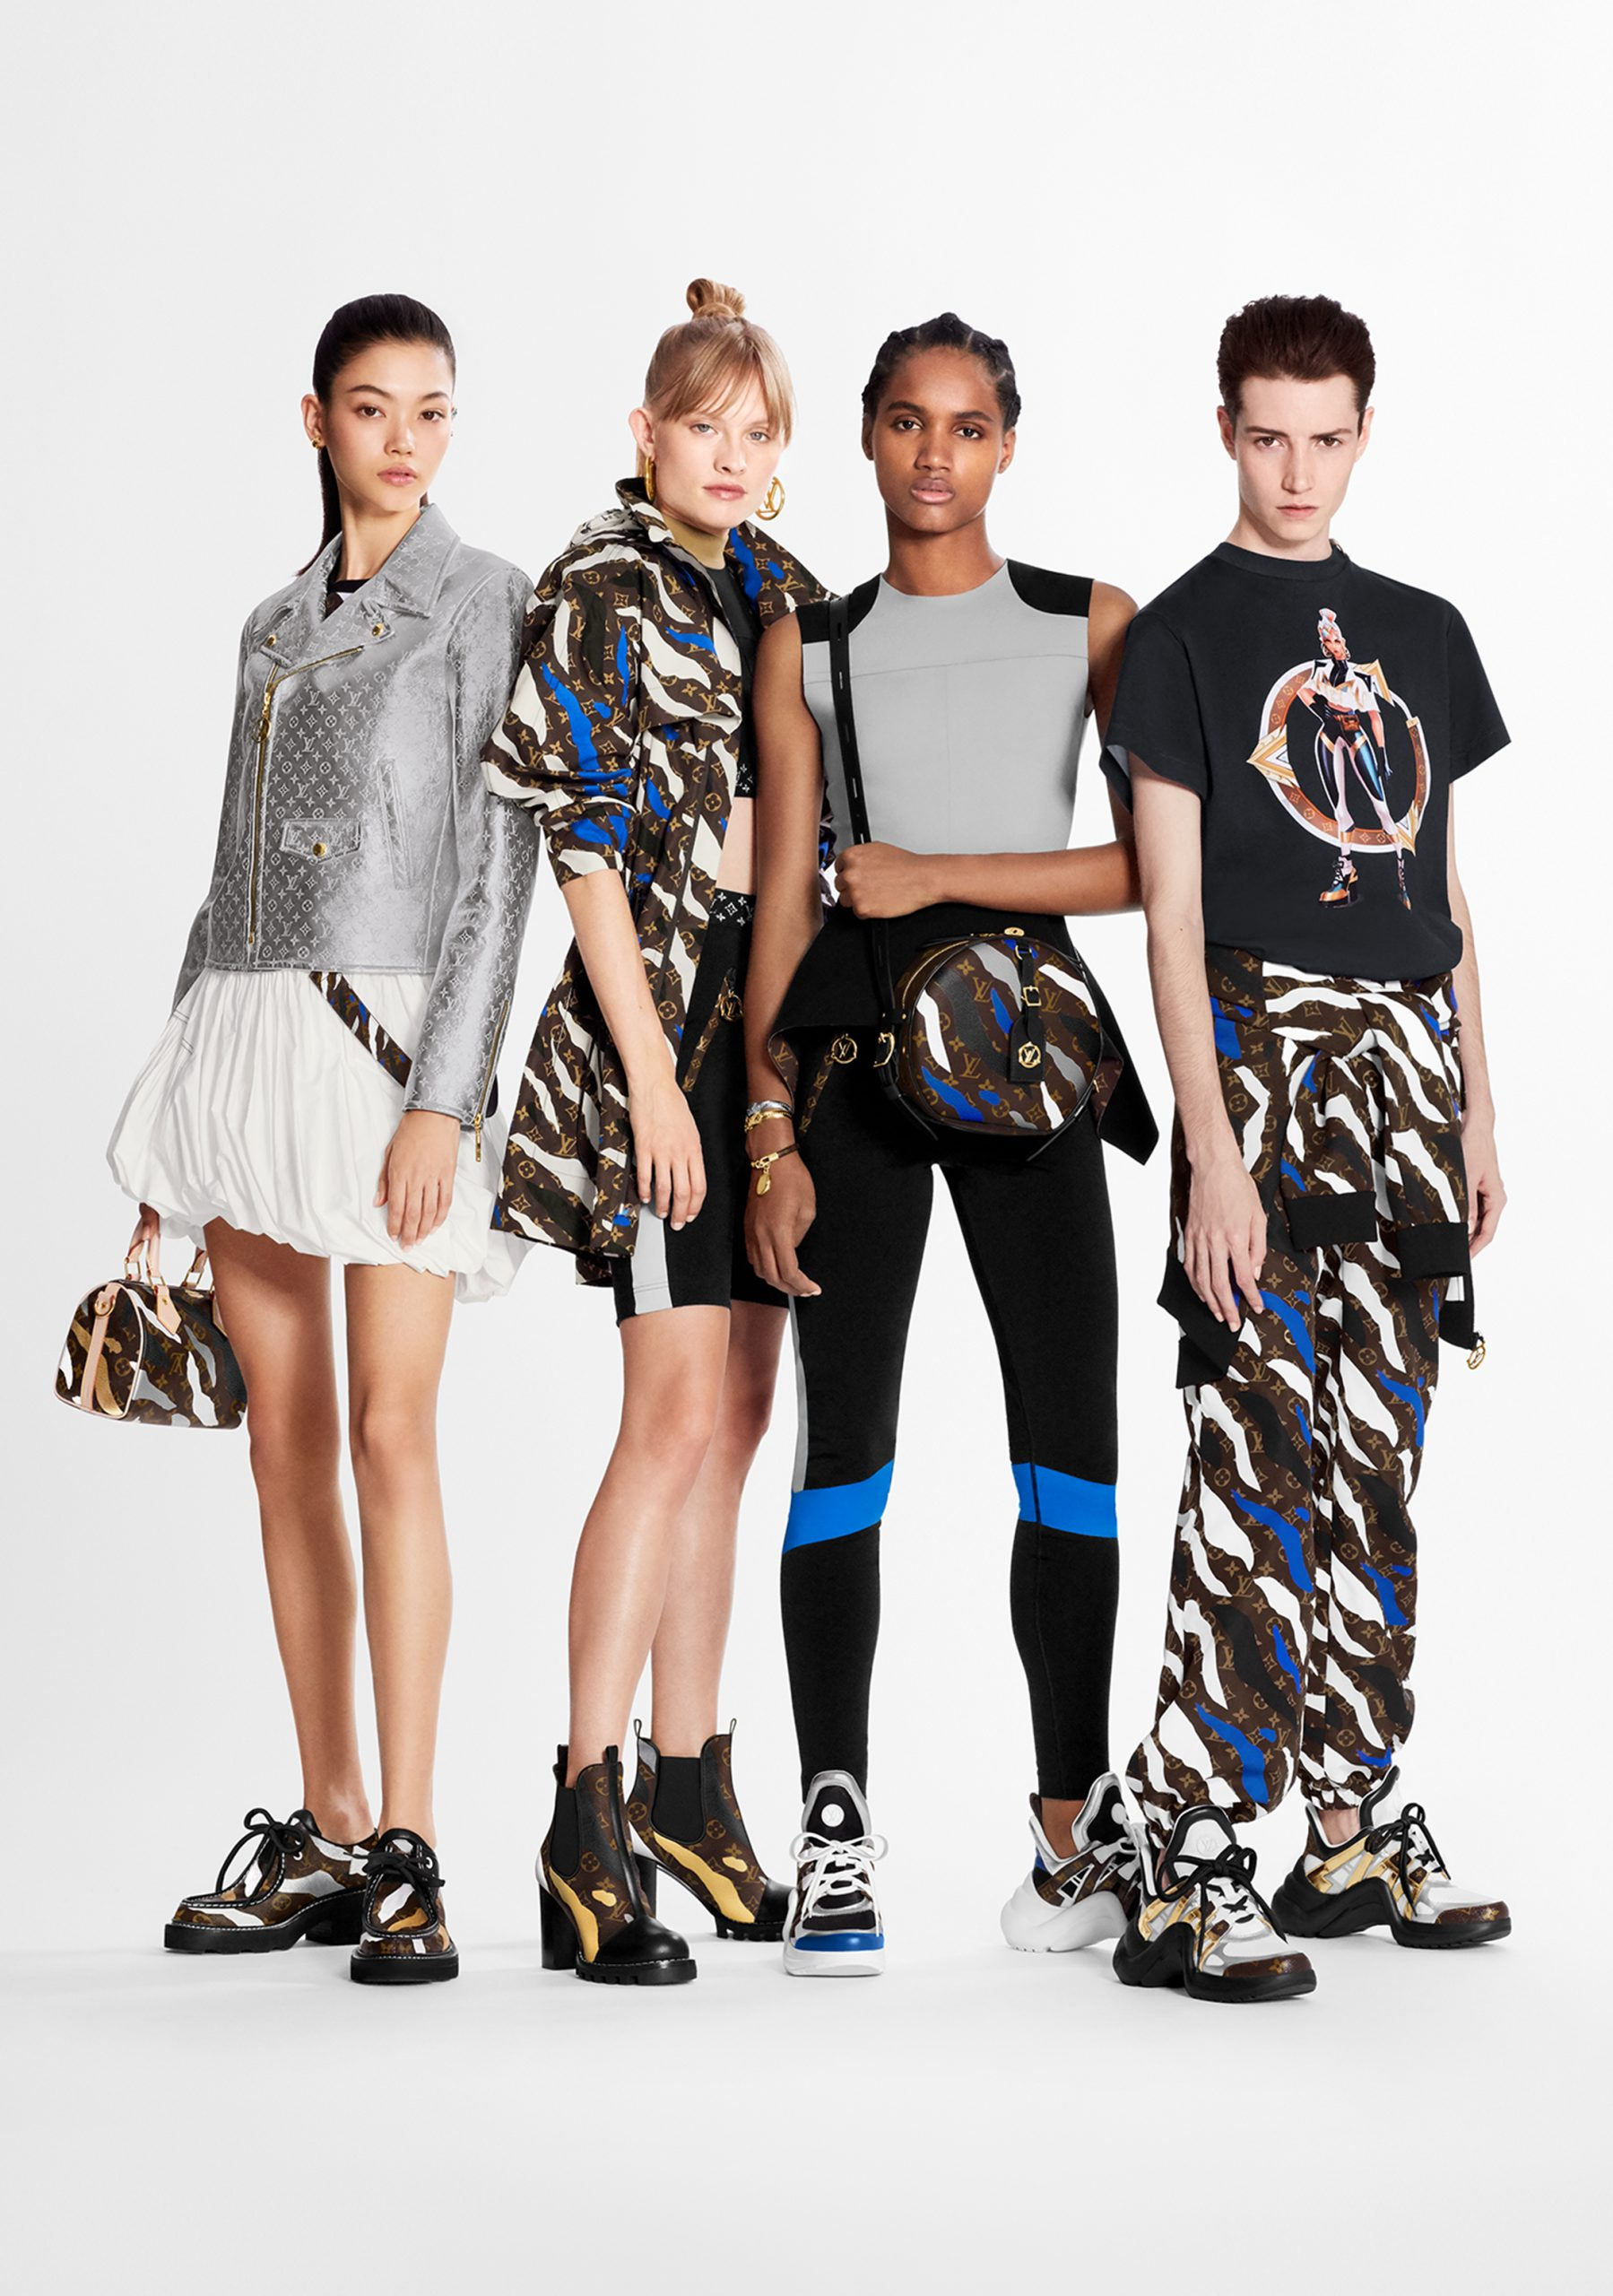 Sustainable Fashion, Sustainable News, Luxiders, Gaming, Luxury Brands and Video Games, Luxury brands and video games, E-Sports, Gucci, Gucci Garden in Roblox, Louis Vuitton, LvxLoL, League of Legends, Balenciaga, Immersive gaming, Marc Jacobs, Valentino, Animal Crossing, Fashion Democratization, The Sims, Gaming, Gen-Z, Millenials, Luxury Fashion and Gaming Industry, Luxury Brands, Luxury fashion and gaming a bright future in the horizon,